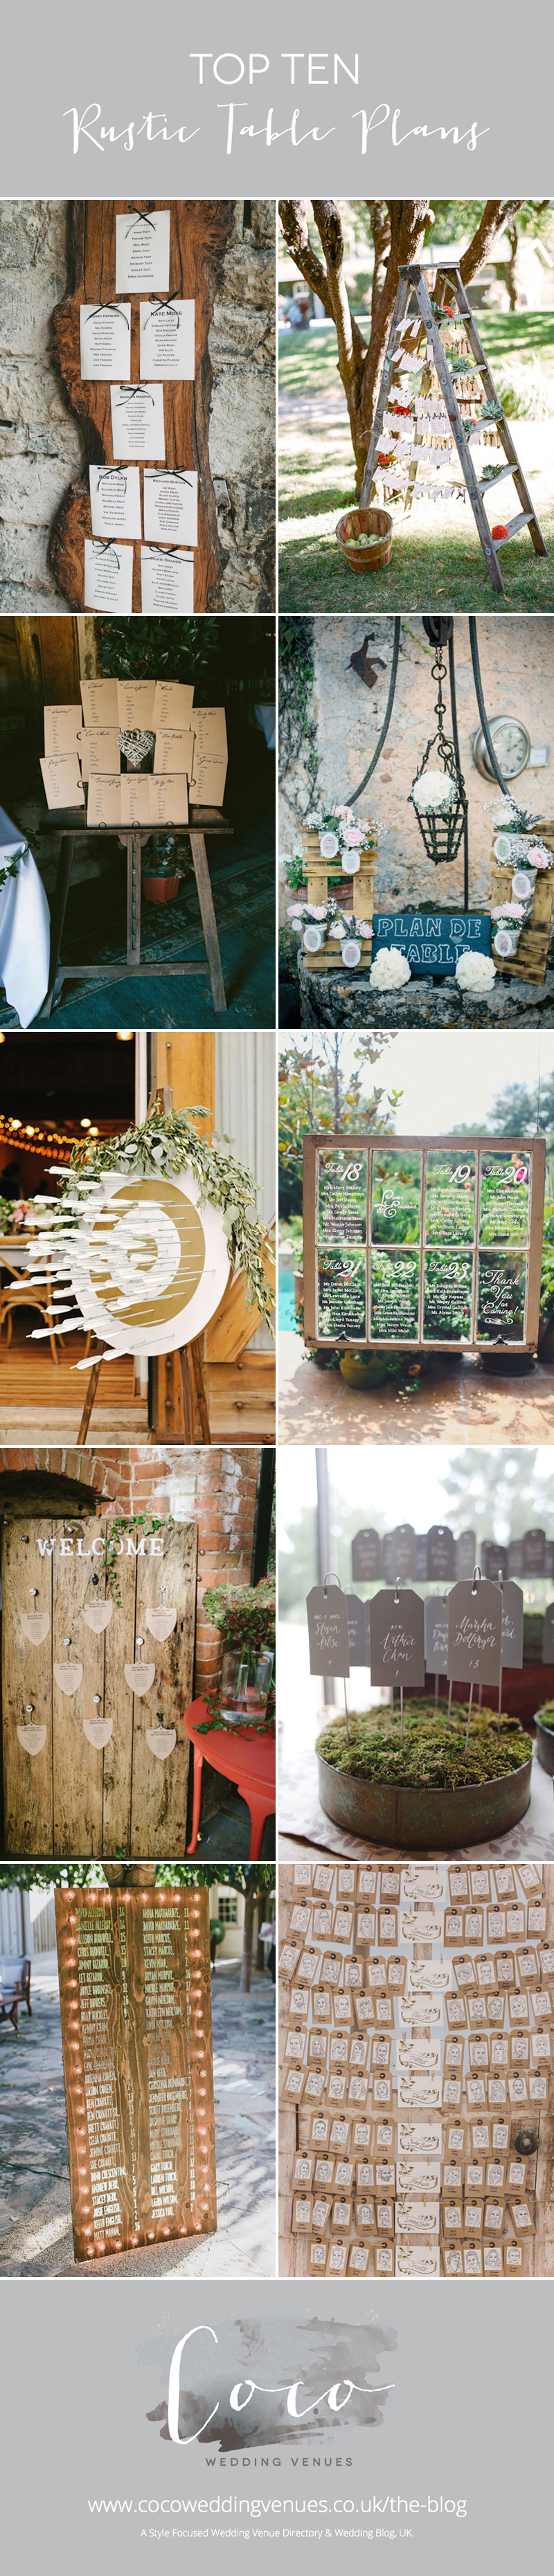 10-rustic-tableplans-coco-wedding-venues-pin-it